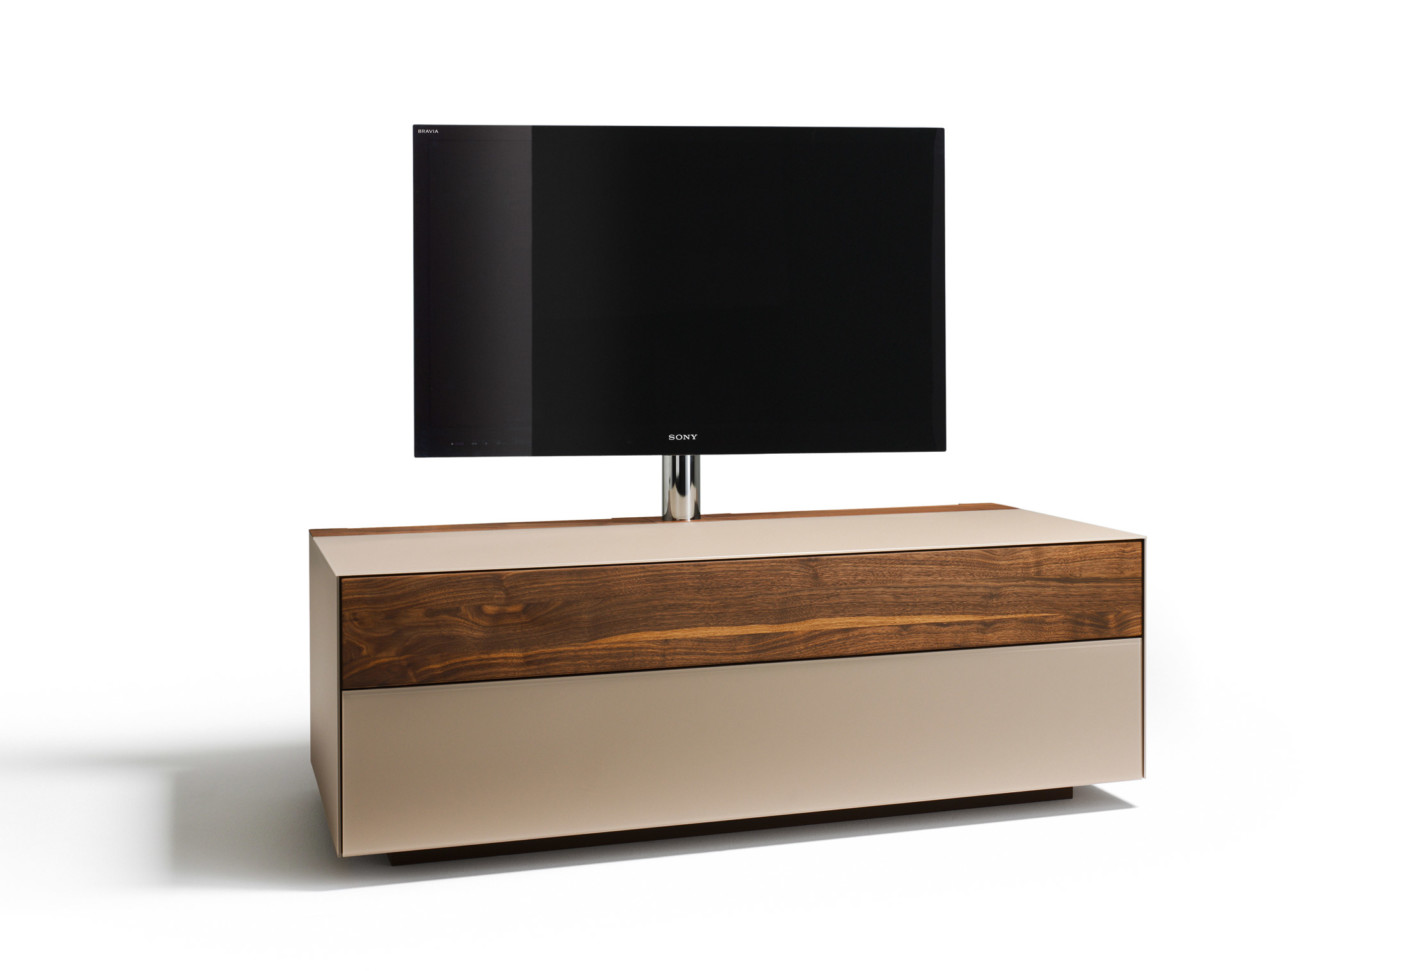 Fernsehmöbel Versenkbar Cubus Pure Home Entertainment Von Team 7 Stylepark